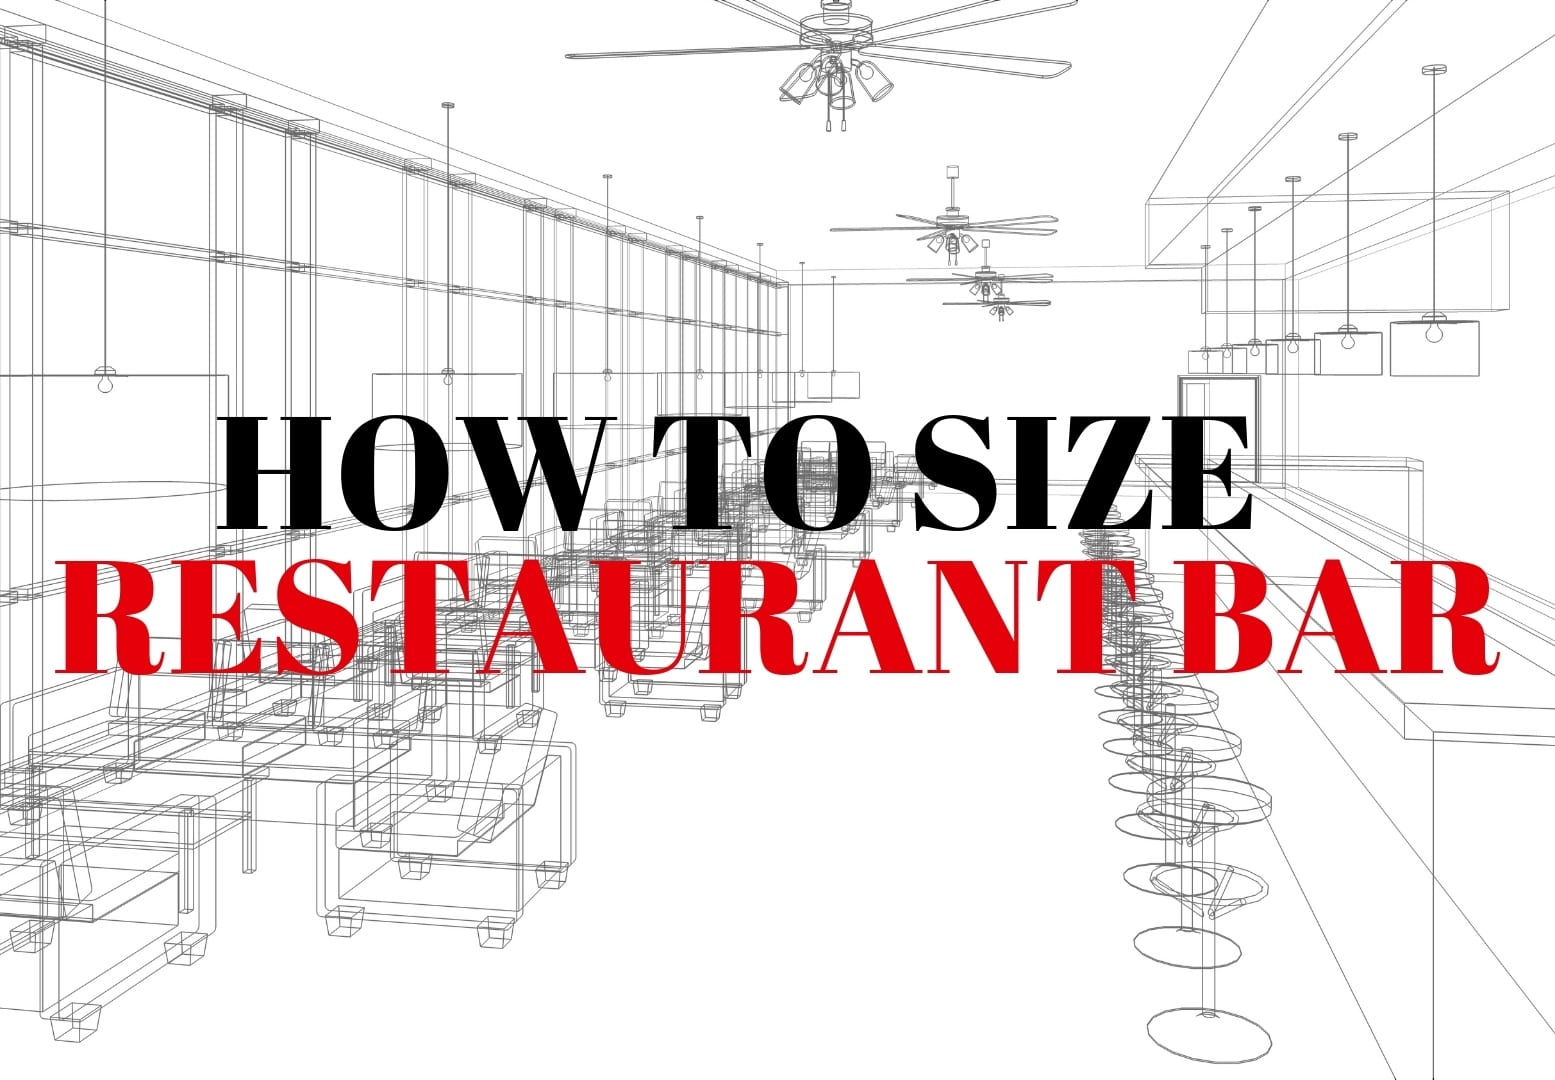 How to size a bar